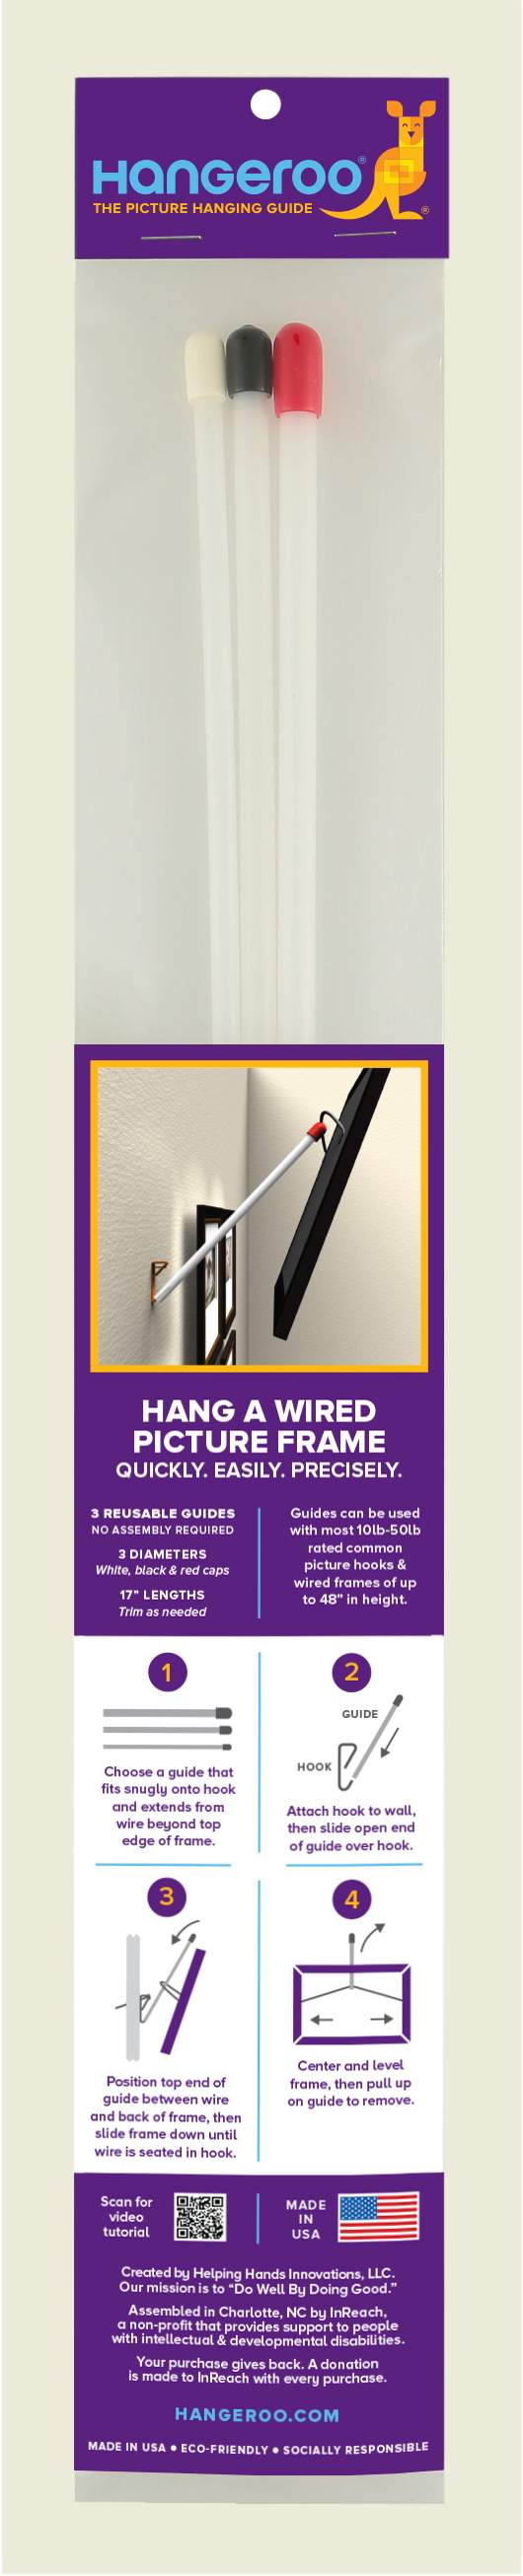 Home - Picture frame & mirror hanging tool.